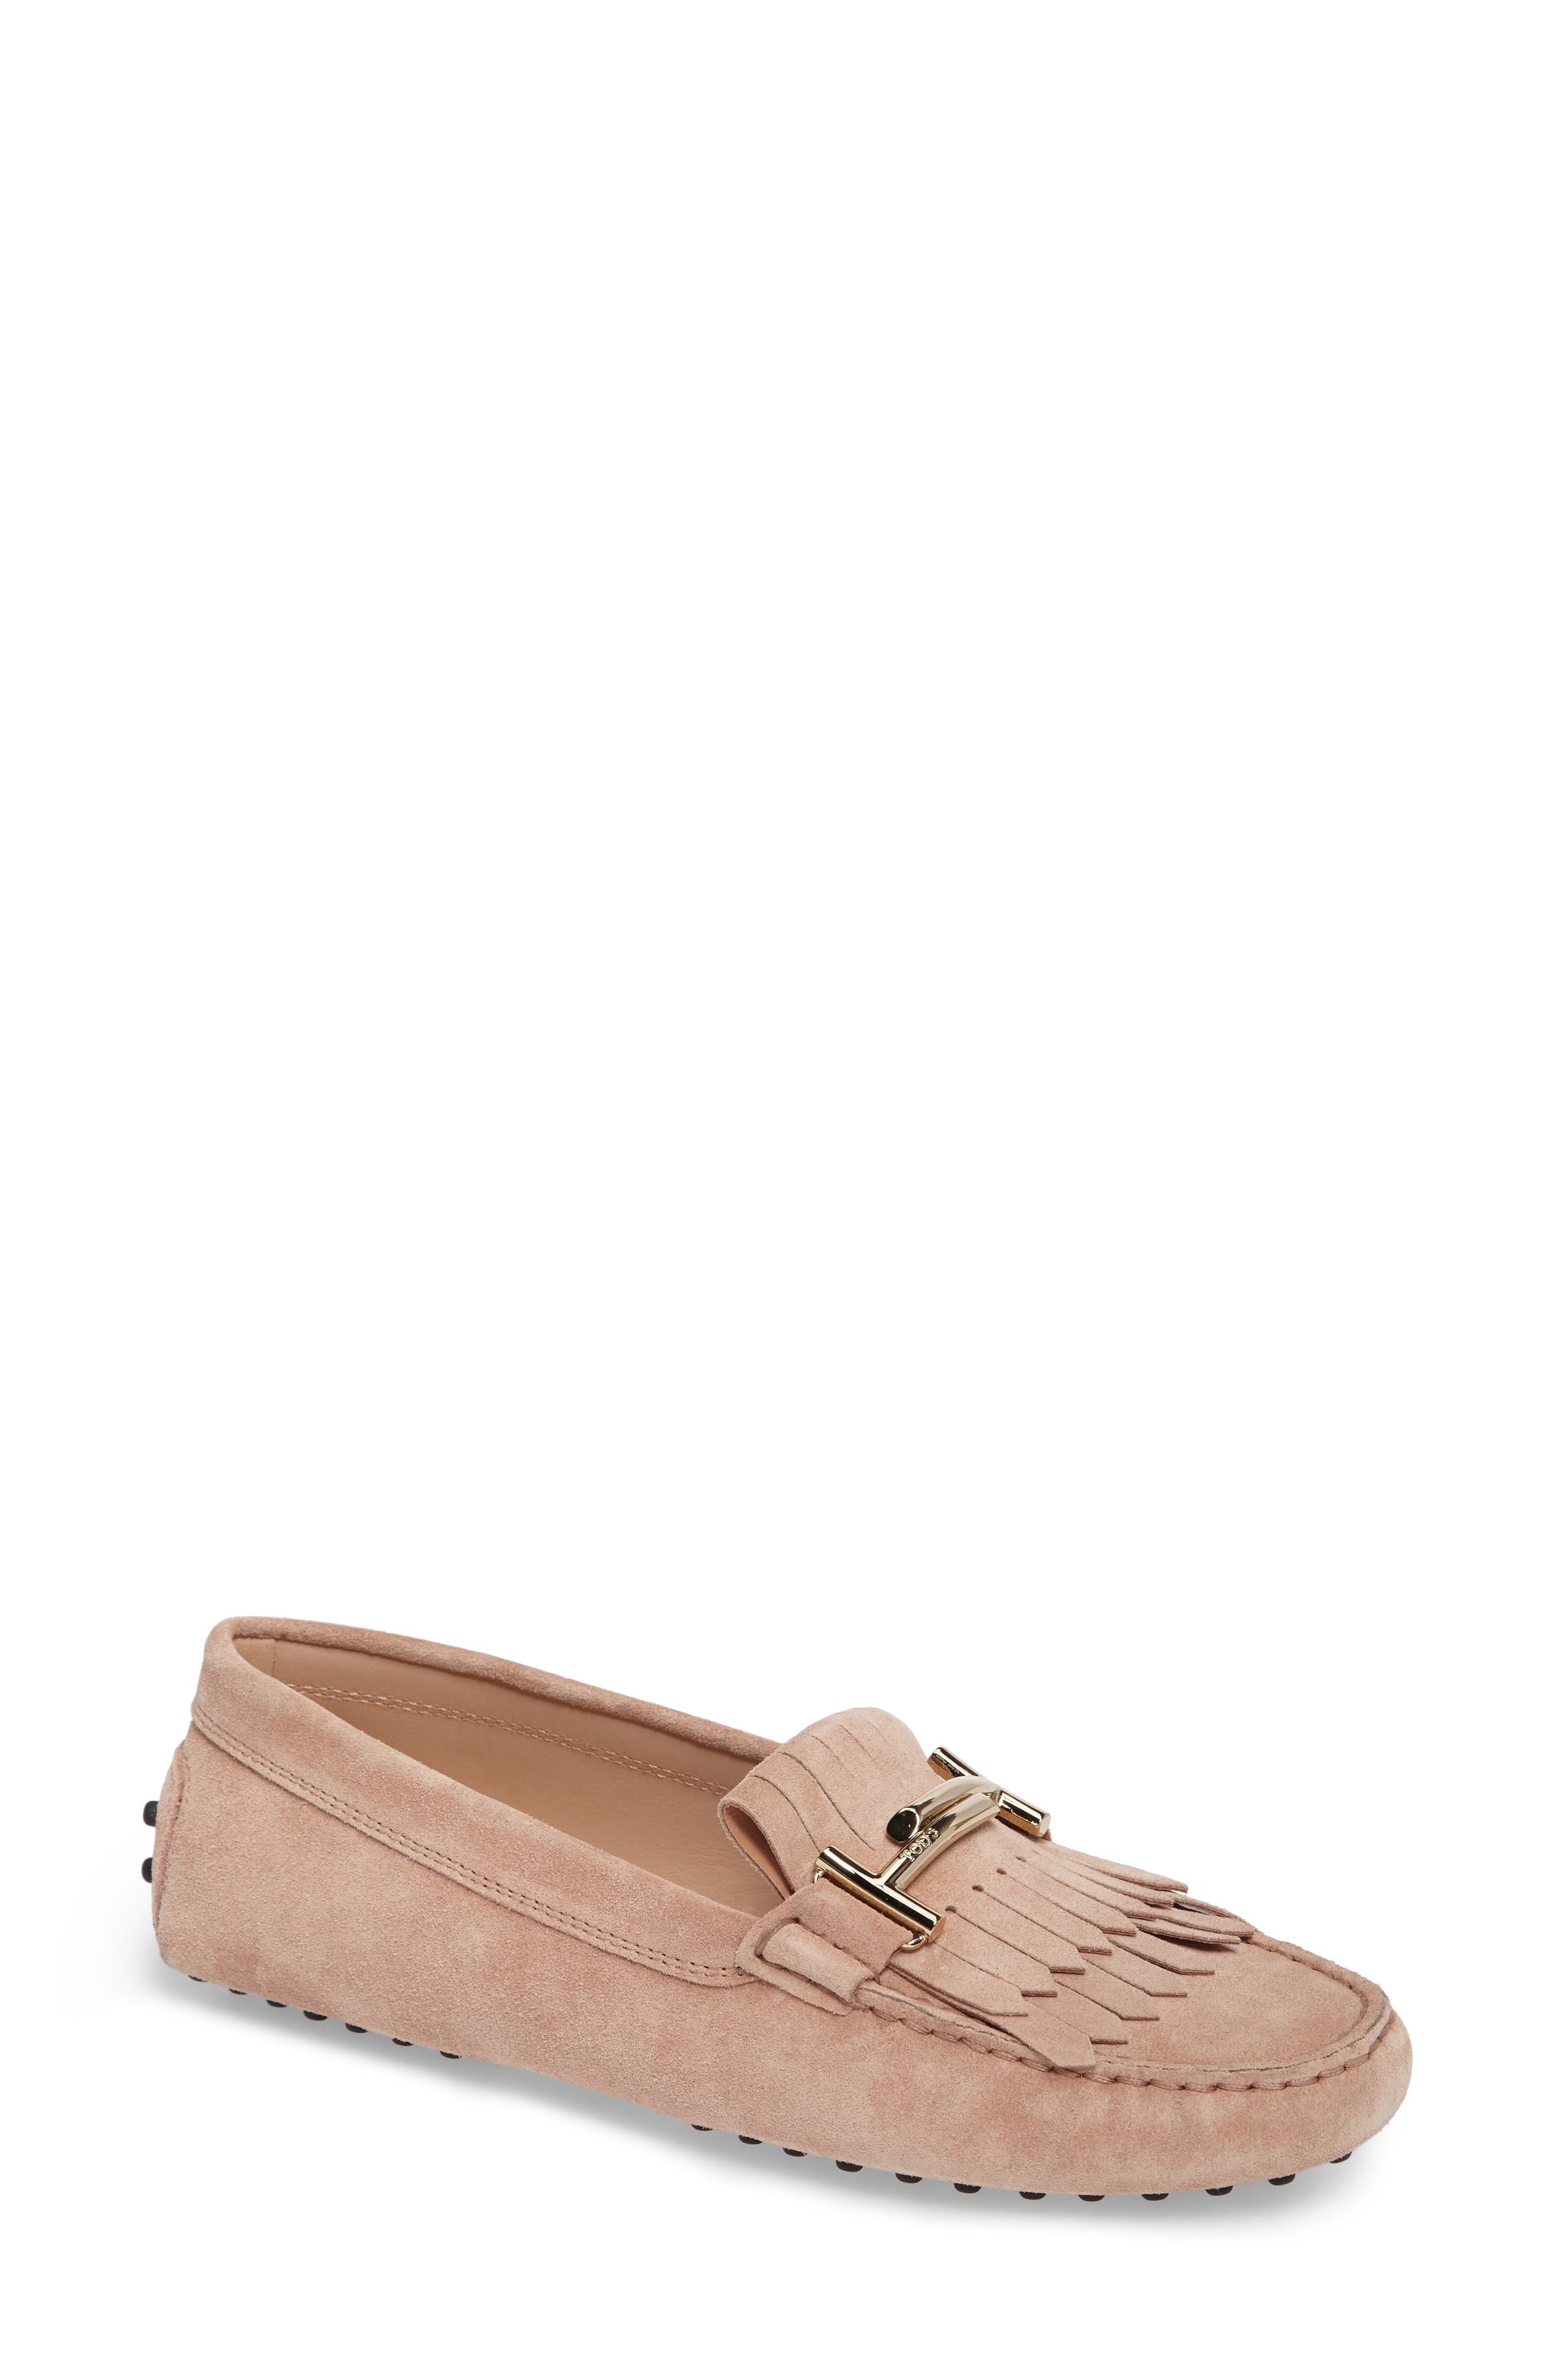 Double T Fringe Gommino Loafer,                             Main thumbnail 1, color,                             250